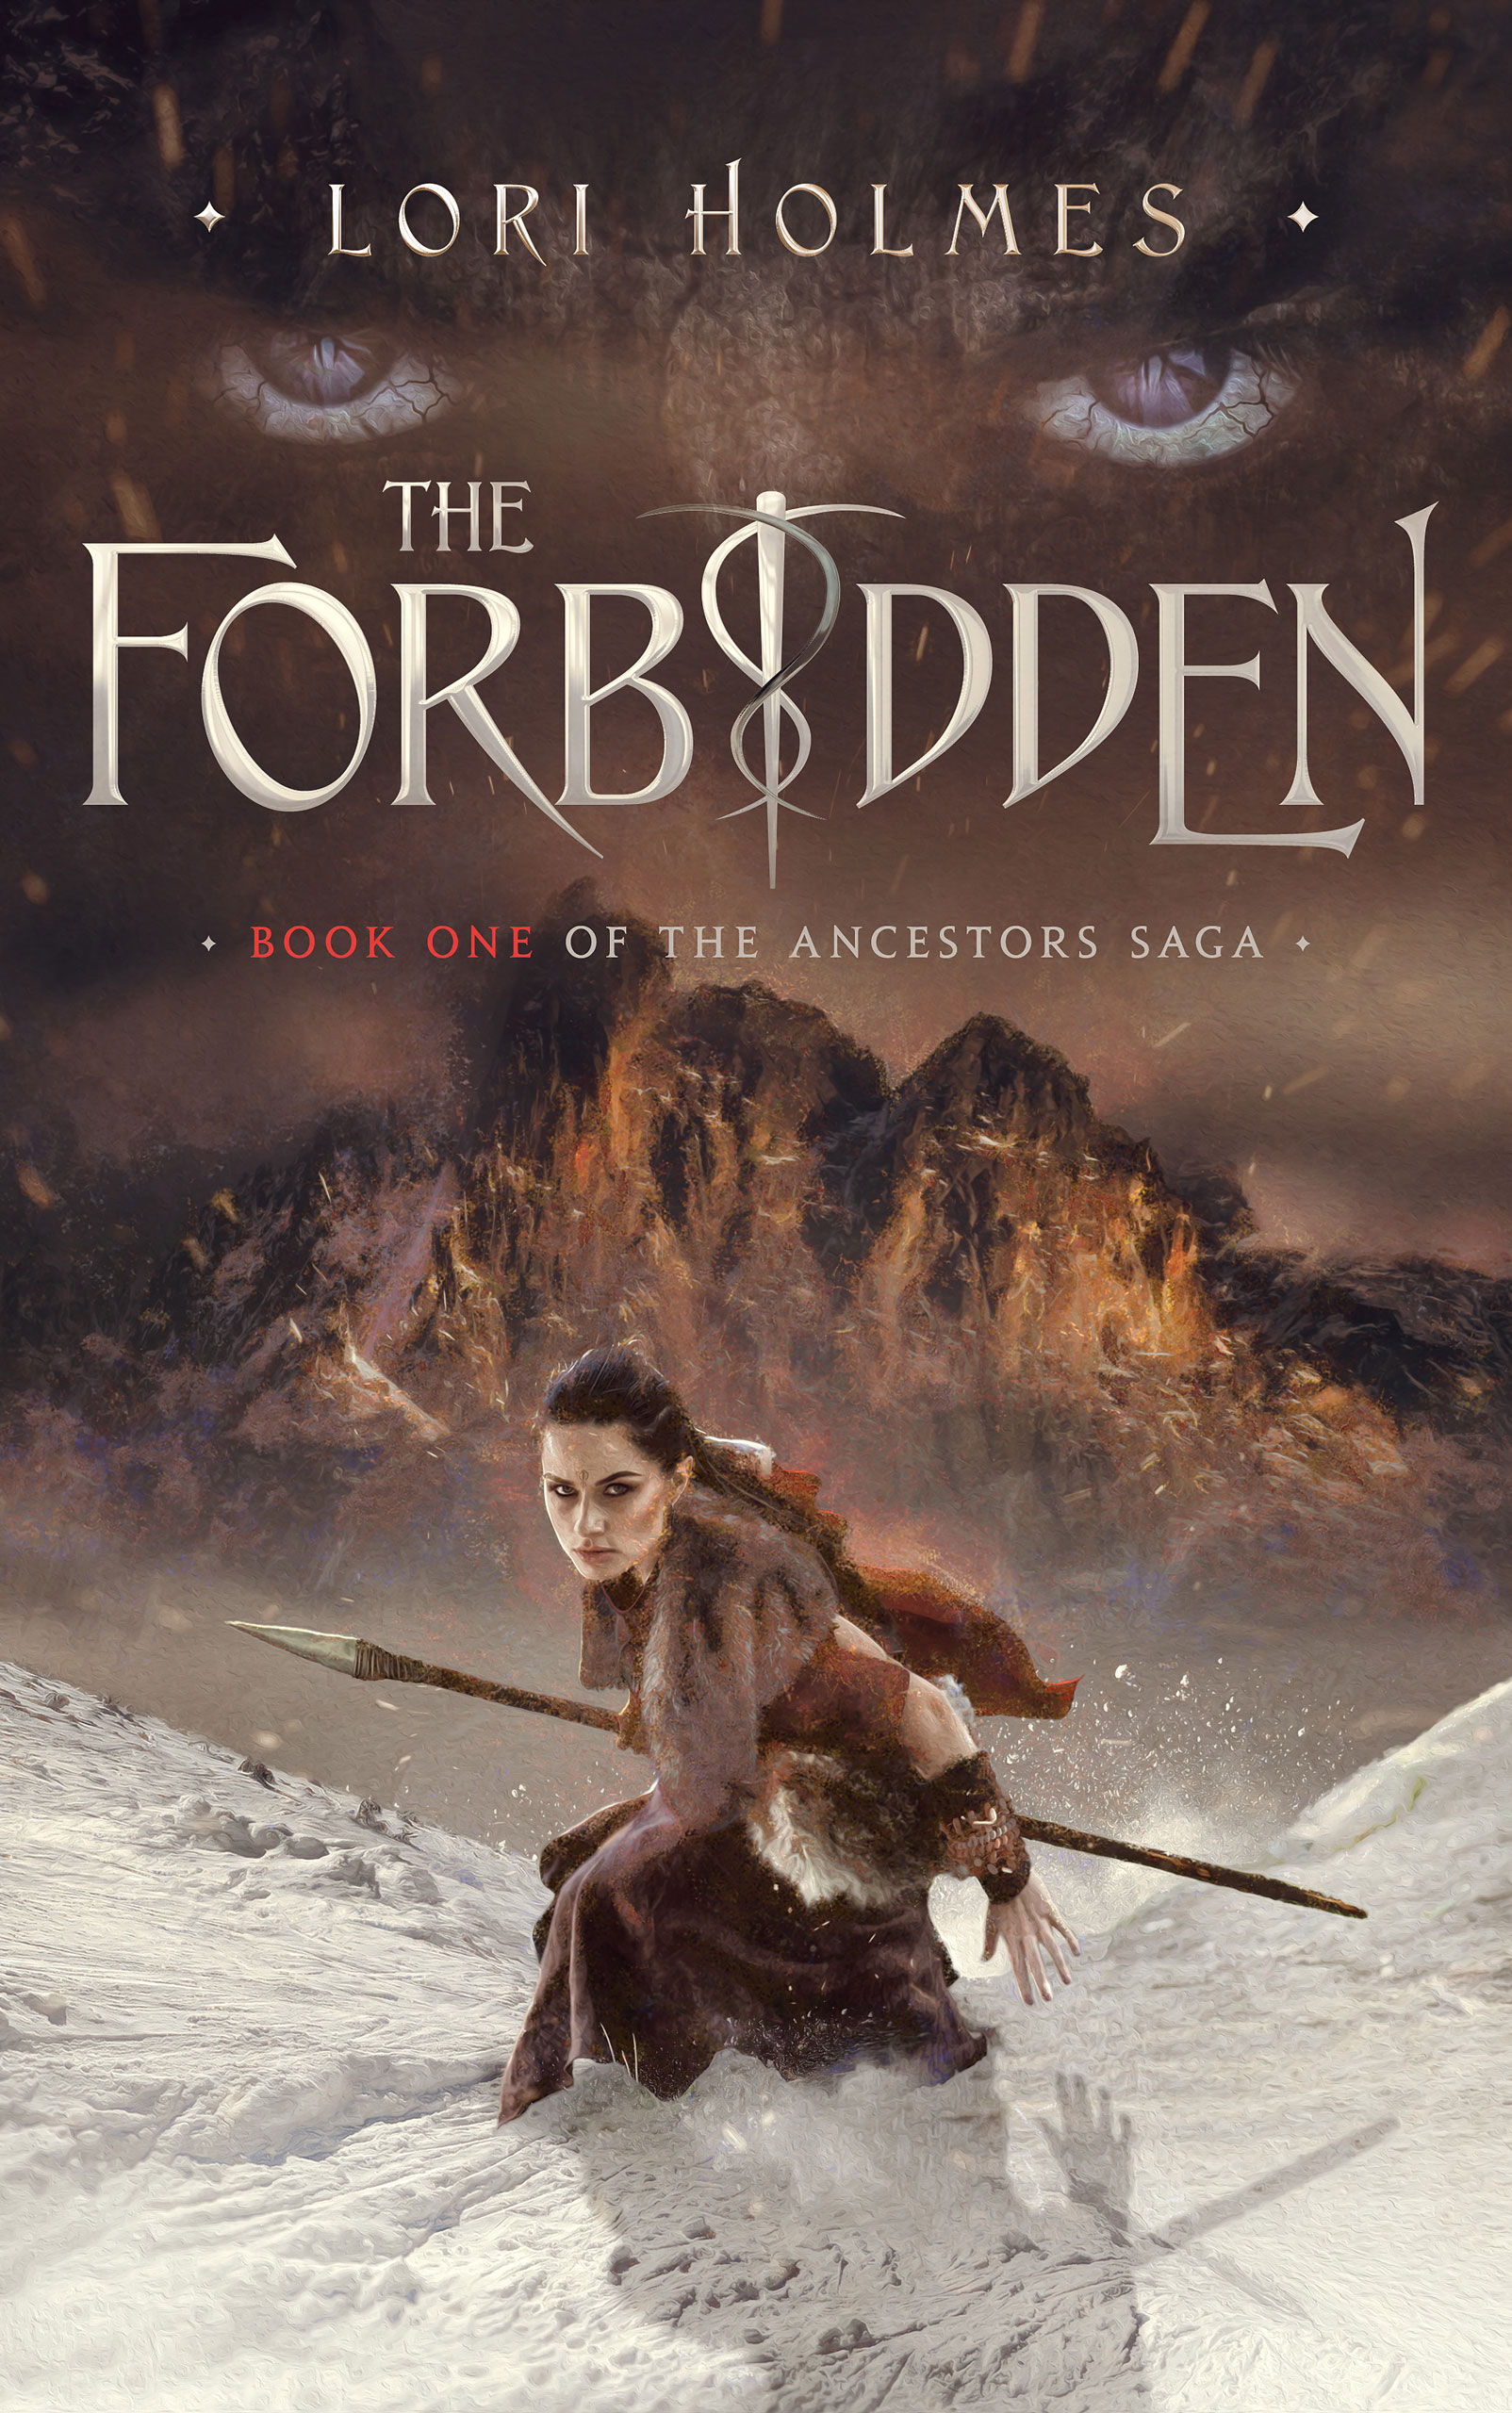 The Forbidden: A Fantasy Romance Series (The Ancestors Saga, #1)